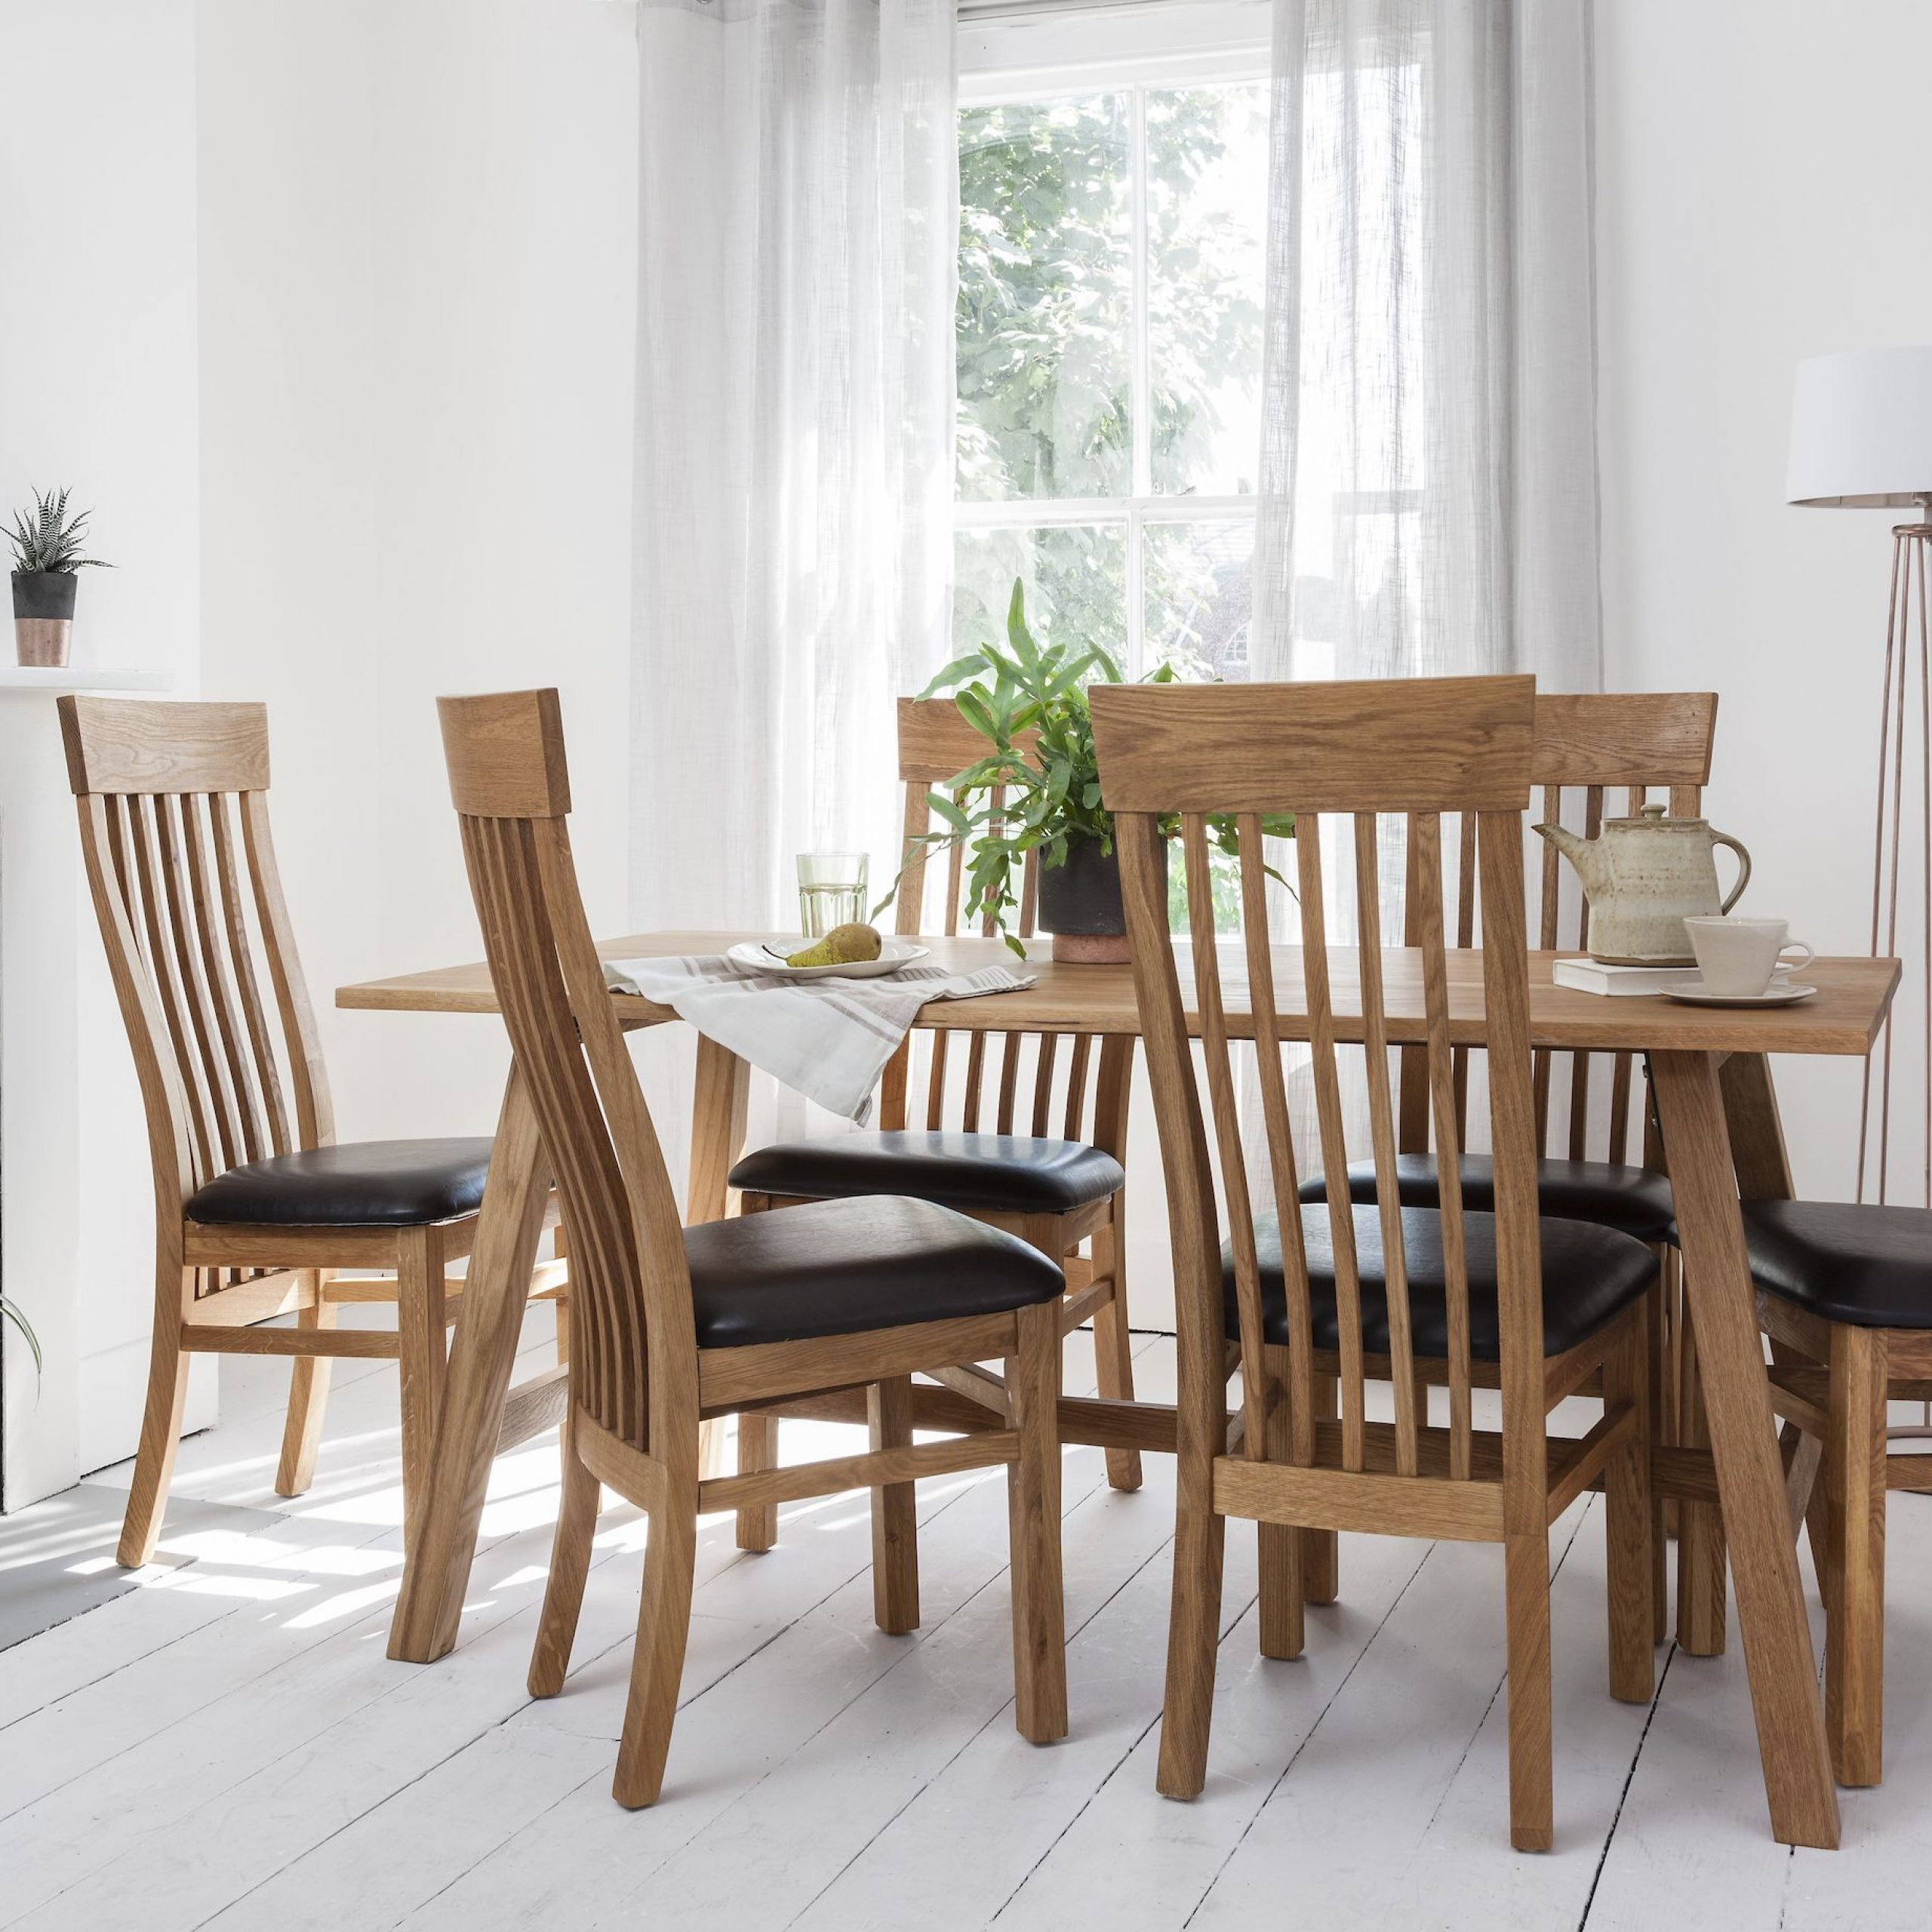 Thanks To Its Authentic Oak Shade, Graceful Chairs And With Recent Kipling Rectangular Dining Tables (Image 21 of 25)